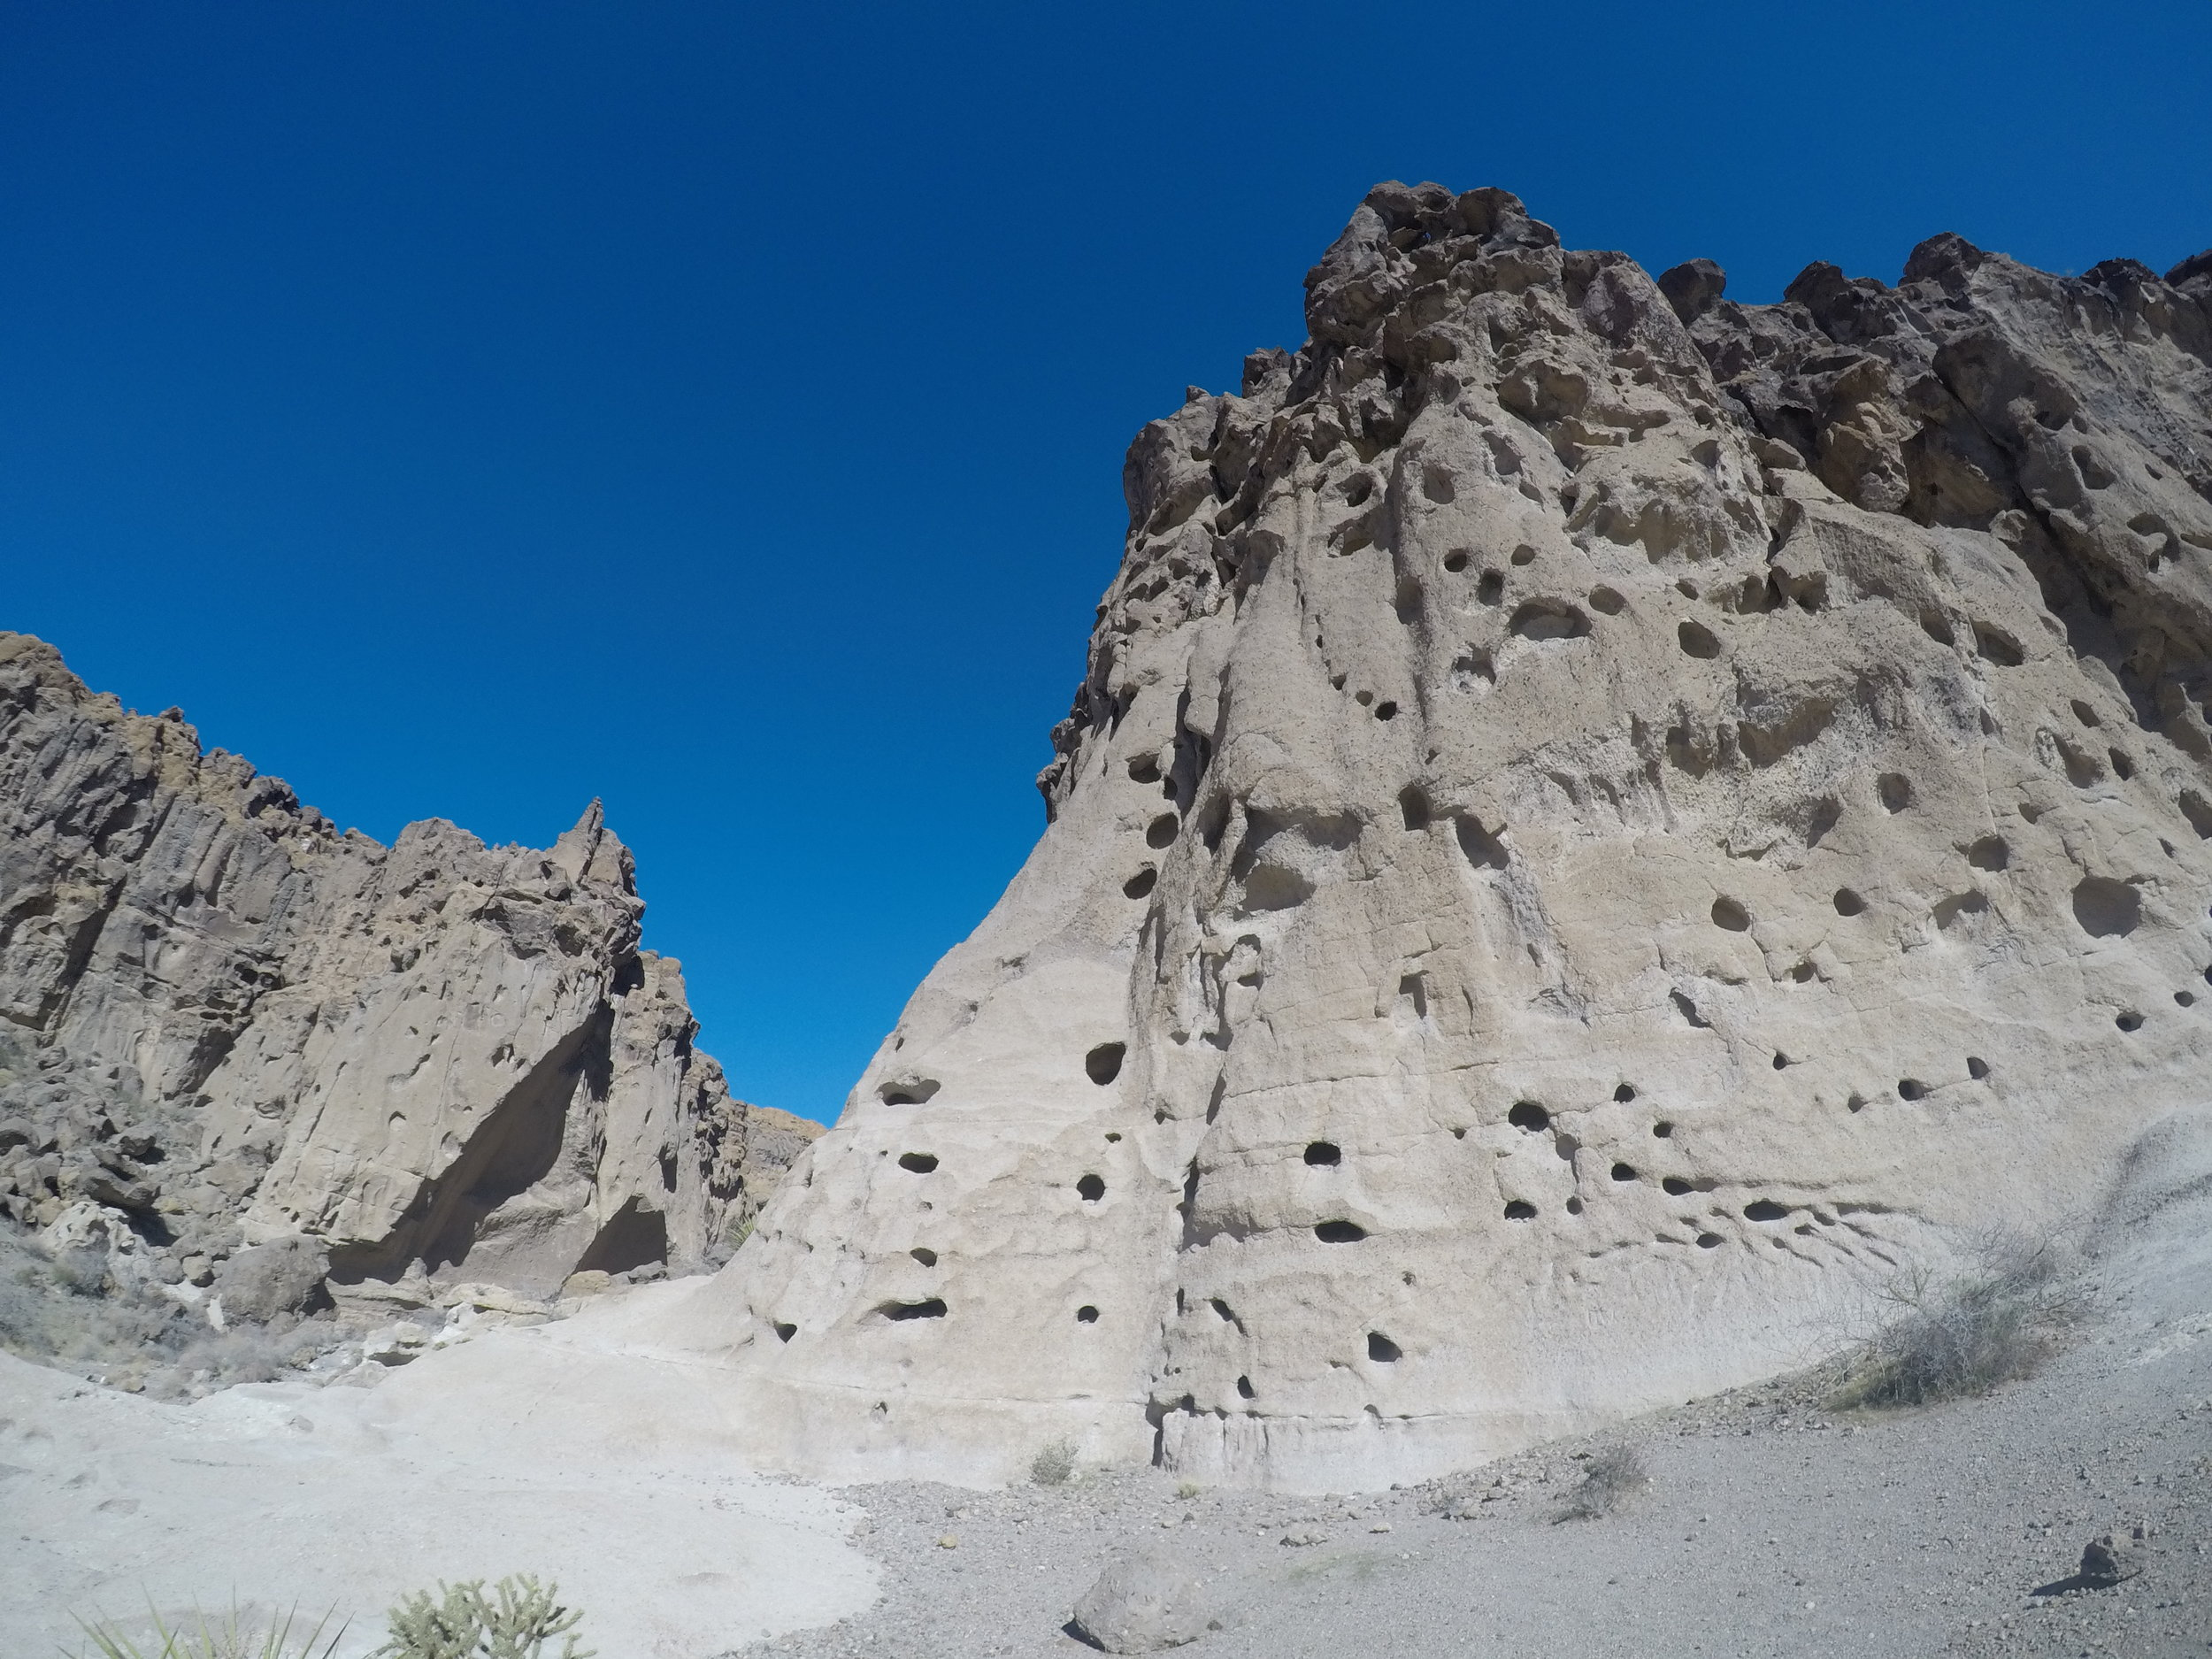 The features of Banshee Canyon were caused by active volcanism in the region many years ago.